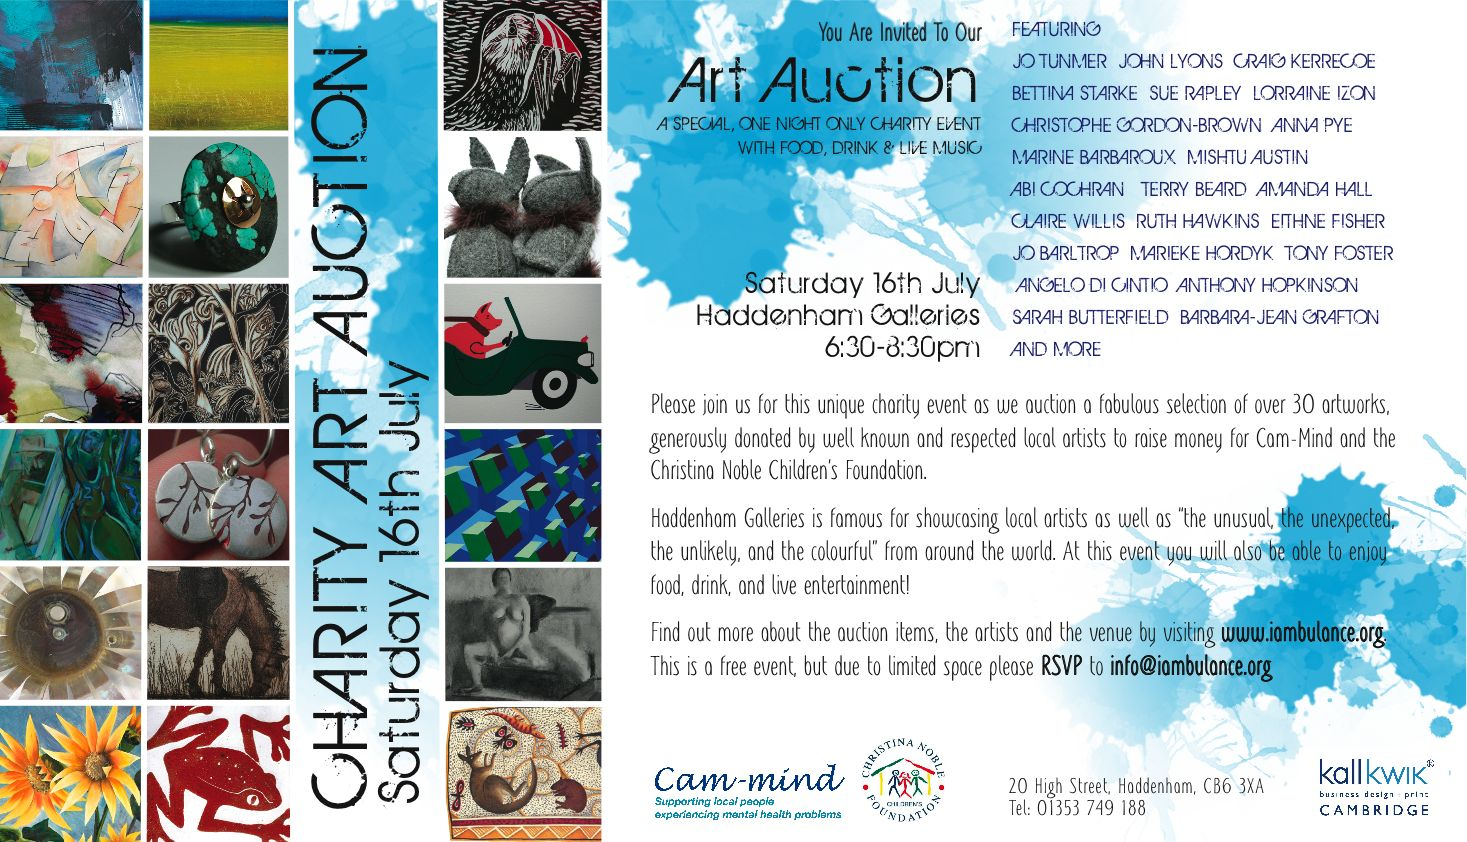 Charity Art Auction at Haddenham Galleries